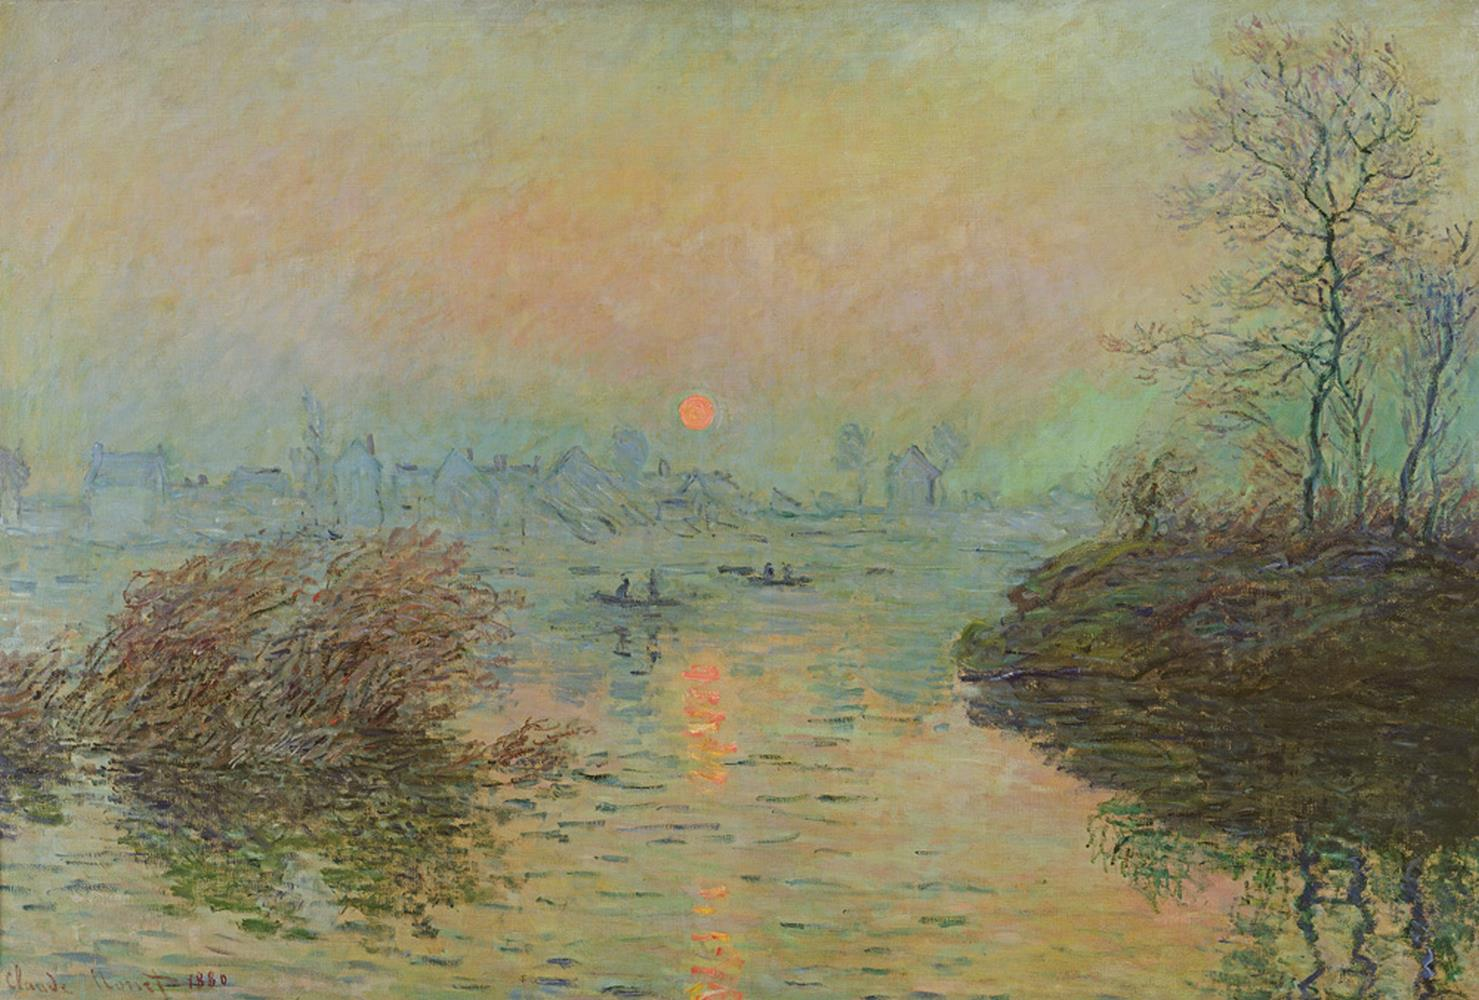 Tele decorative Tramonto sulla Senna, Claude Monet MyCollection